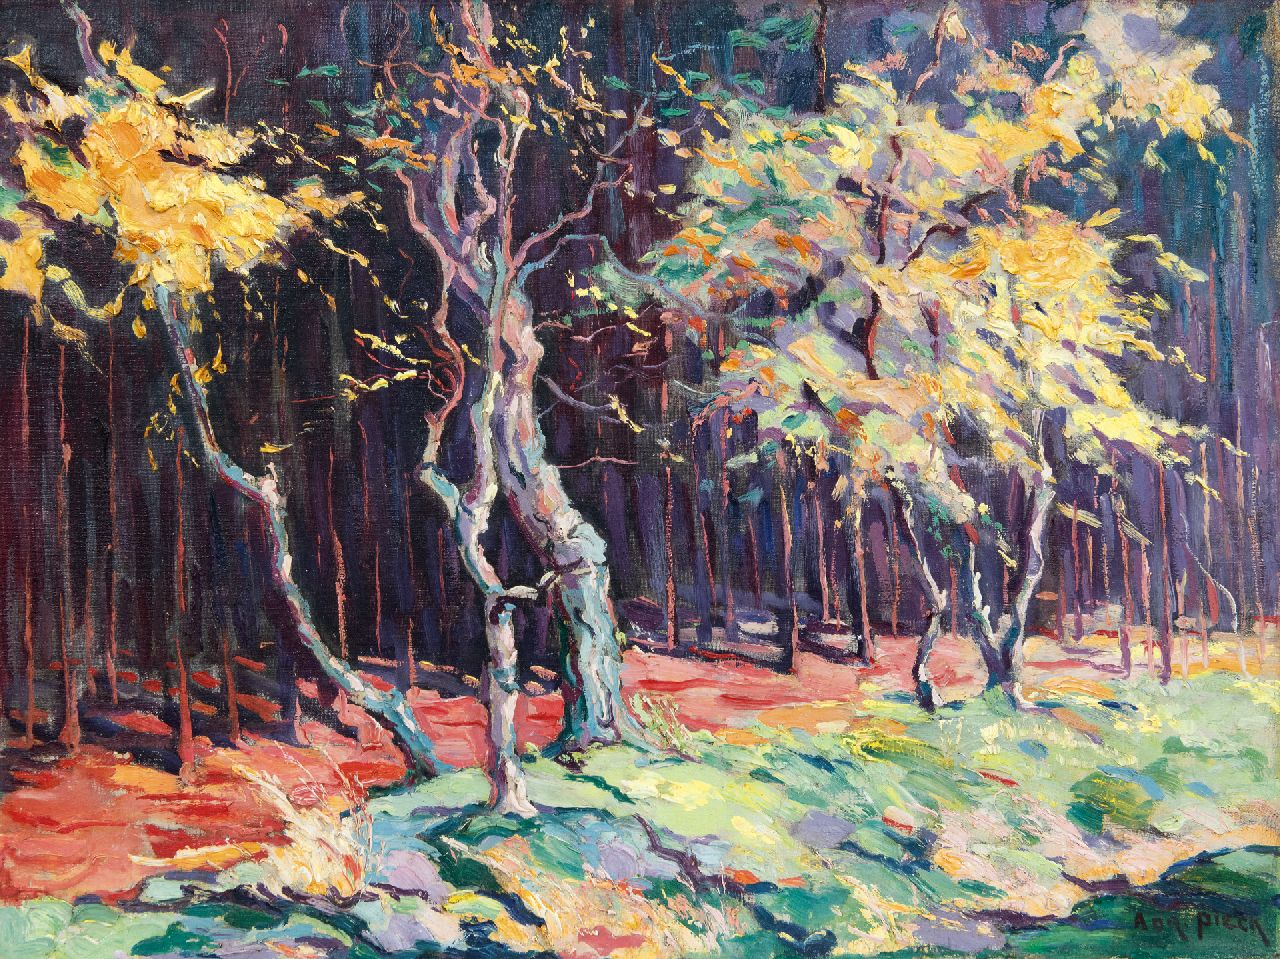 Adri Pieck | Sunny forest edge, oil on canvas, 49.5 x 65.5 cm, signed l.r.